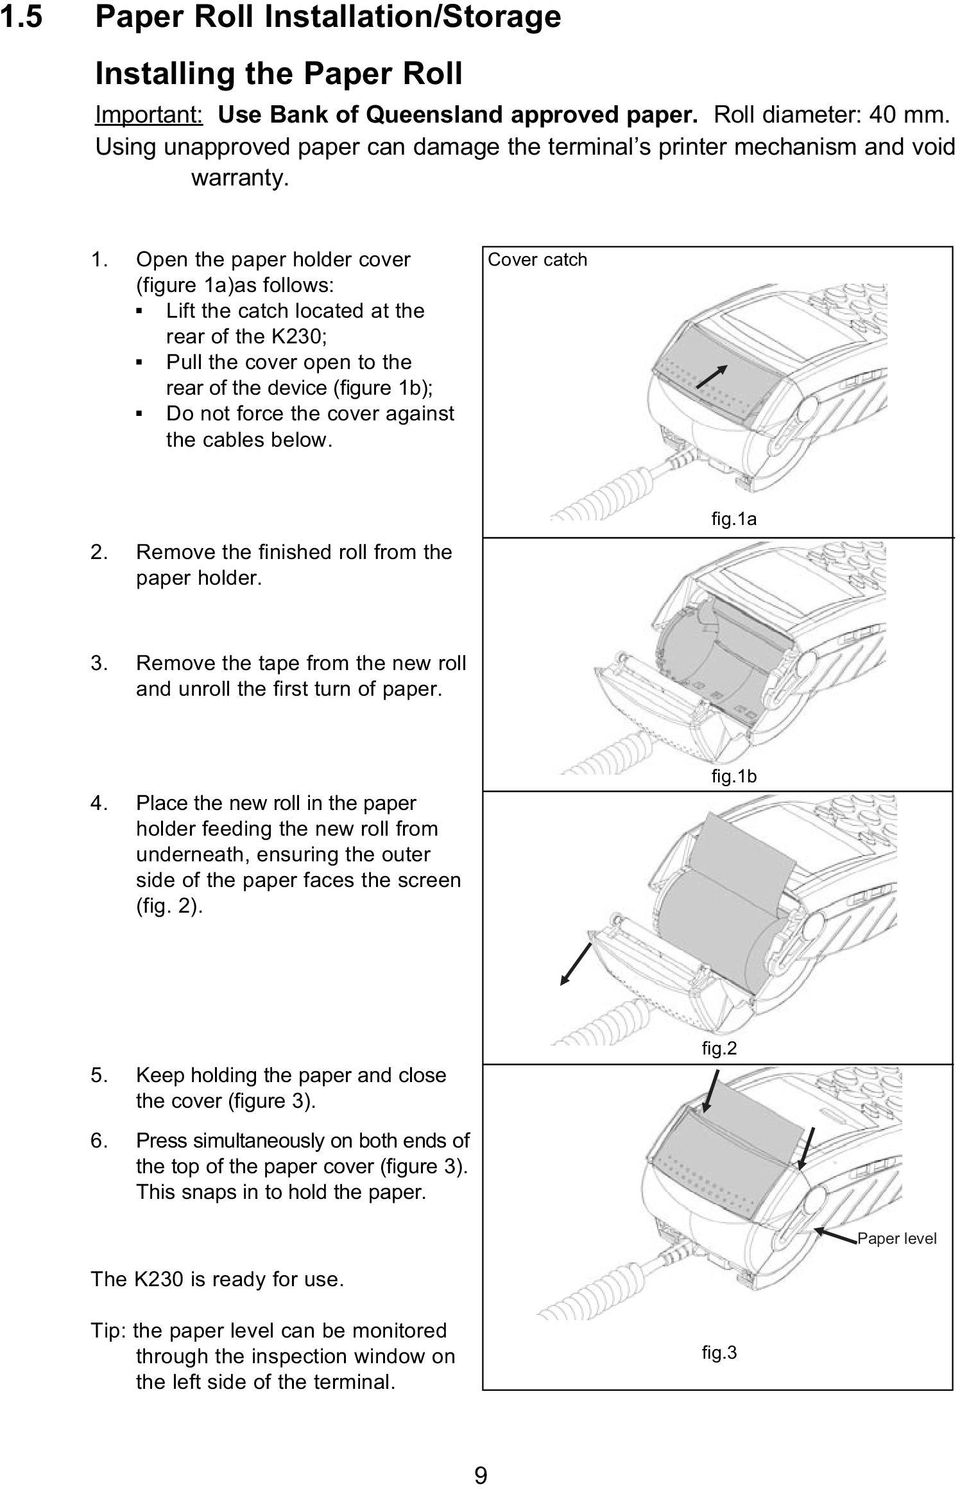 Open the paper holder cover (figure 1a)as follows: Lift the catch located at the rear of the K230; Pull the cover open to the rear of the device (figure 1b); Do not force the cover against the cables